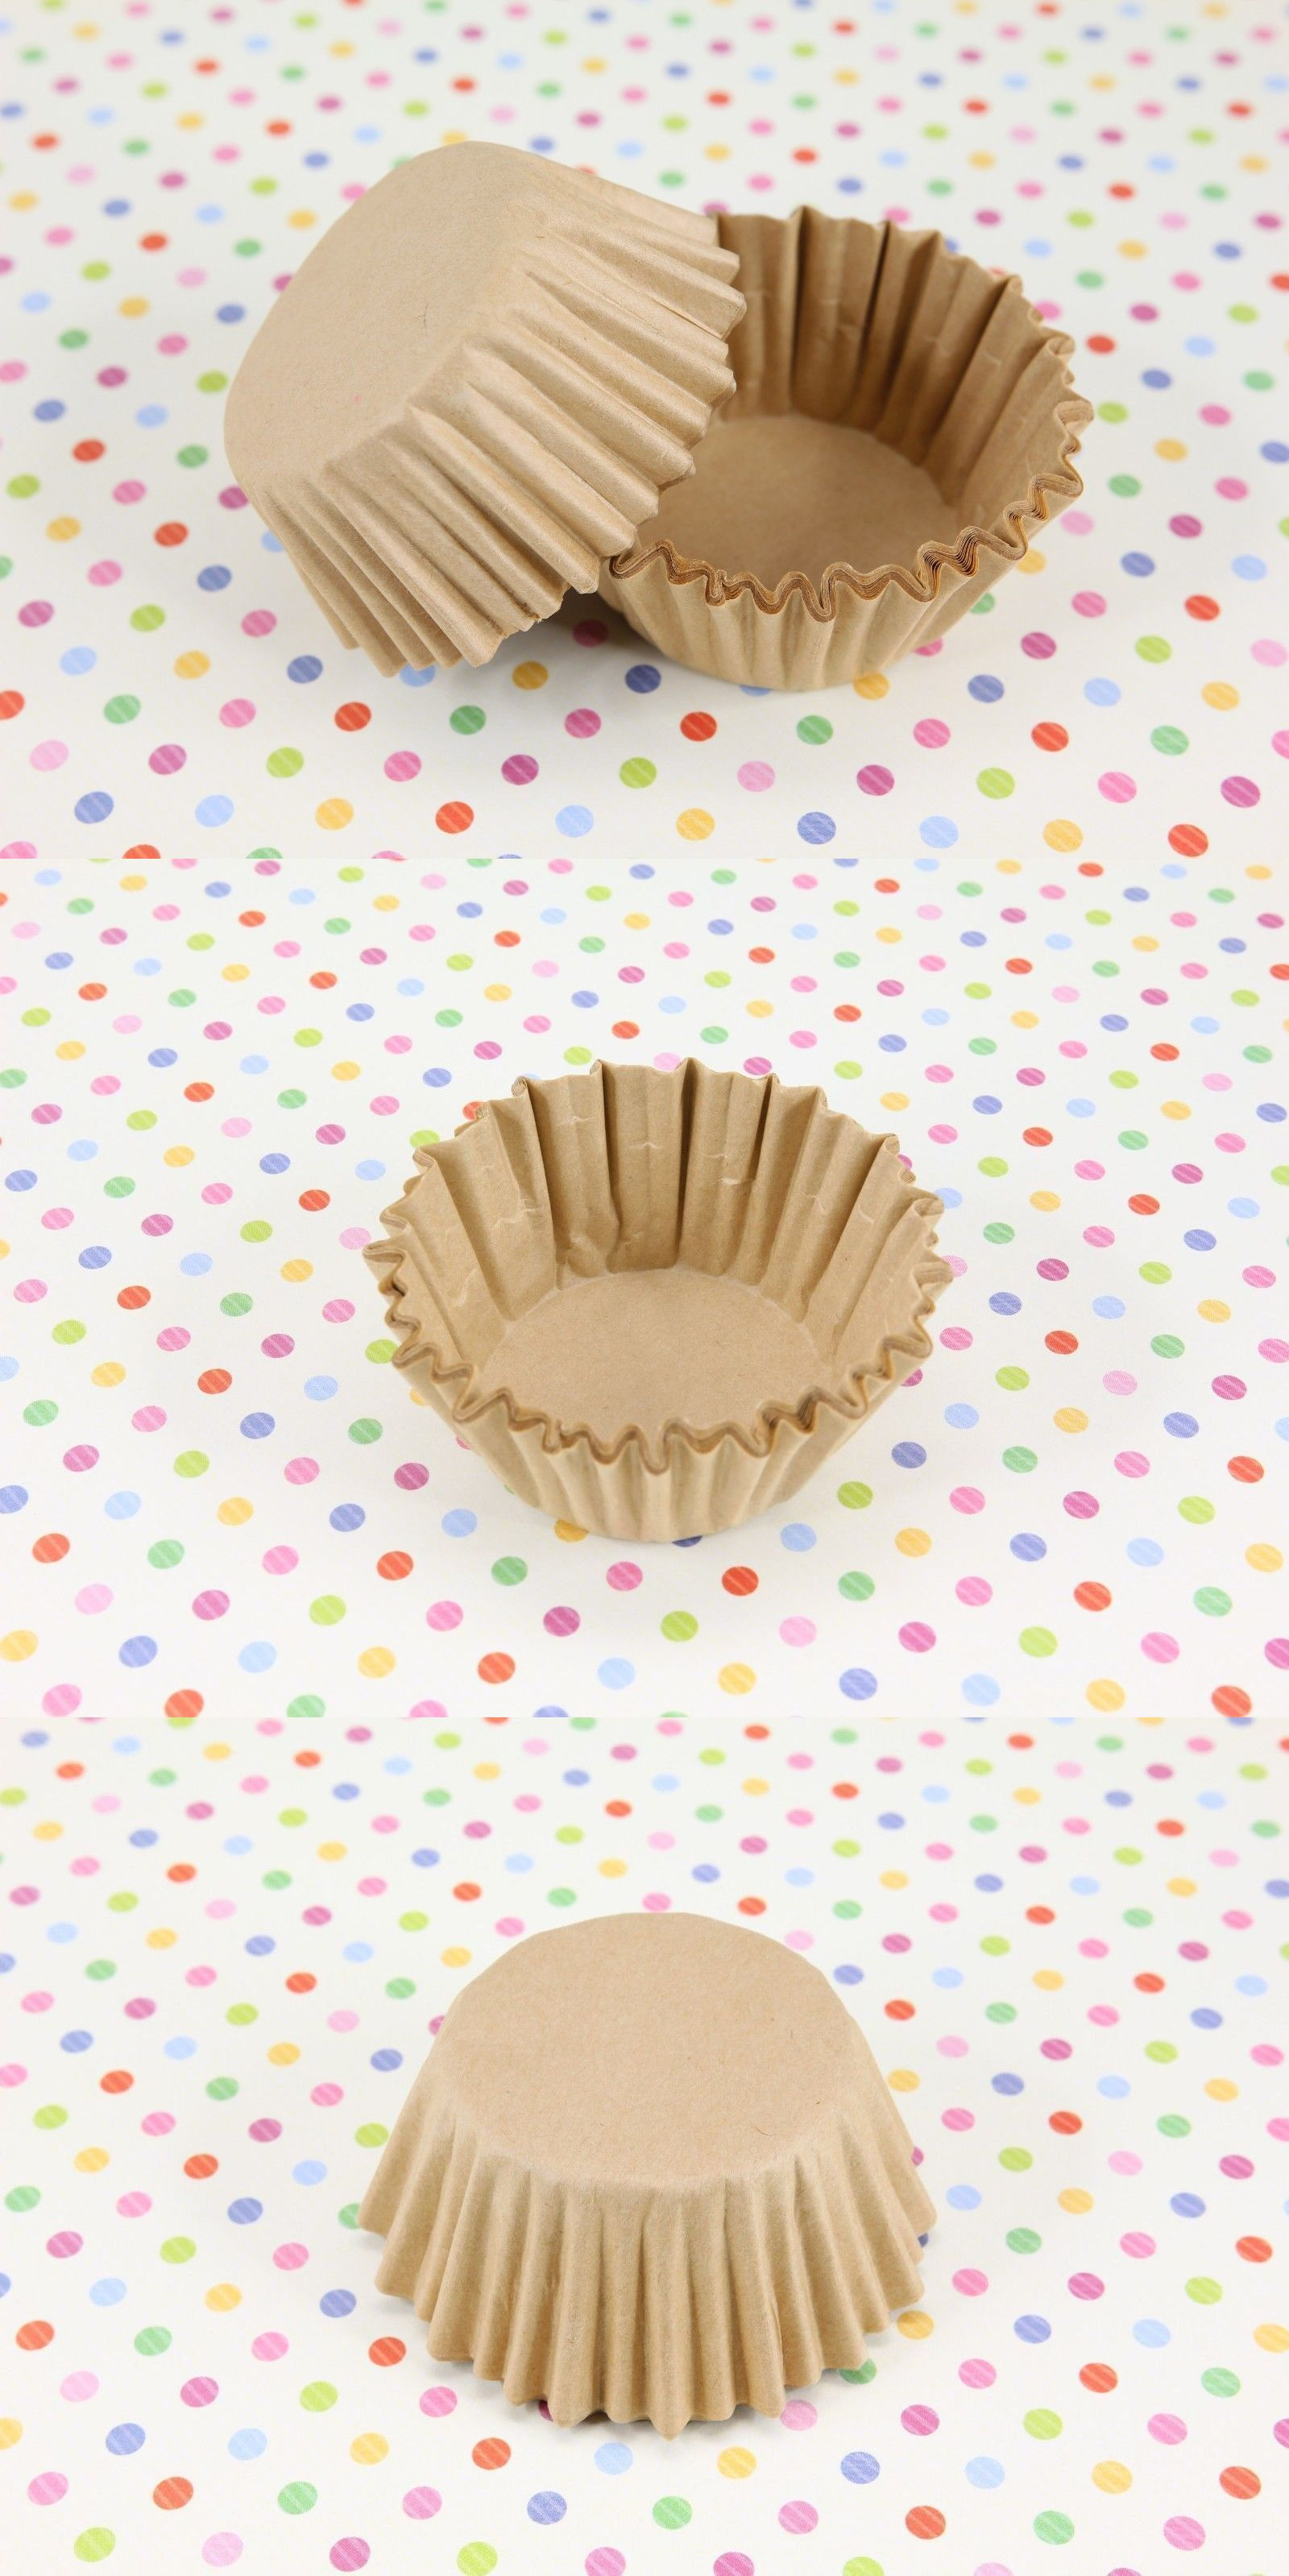 Baking Cups And Liners 177012 1 5 8 X 15 16 Paper Cupcake Small